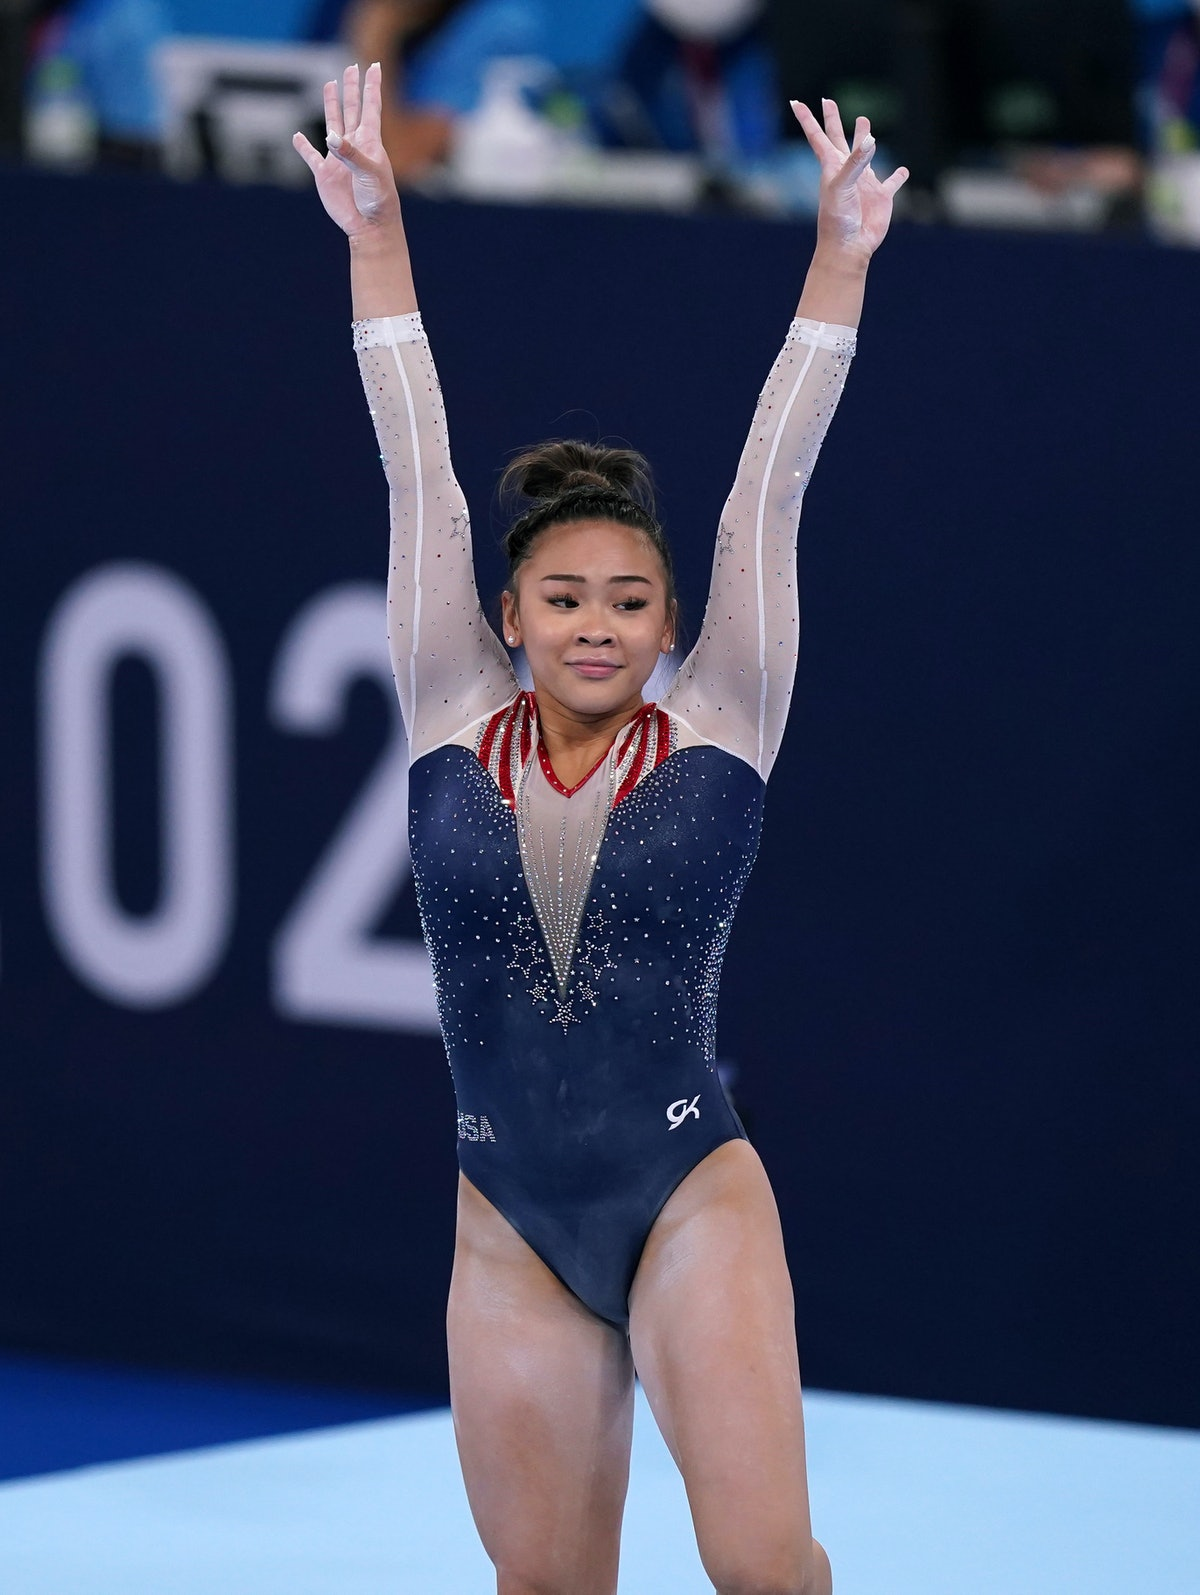 USA's Sunisa Lee, who will compete on DWTS